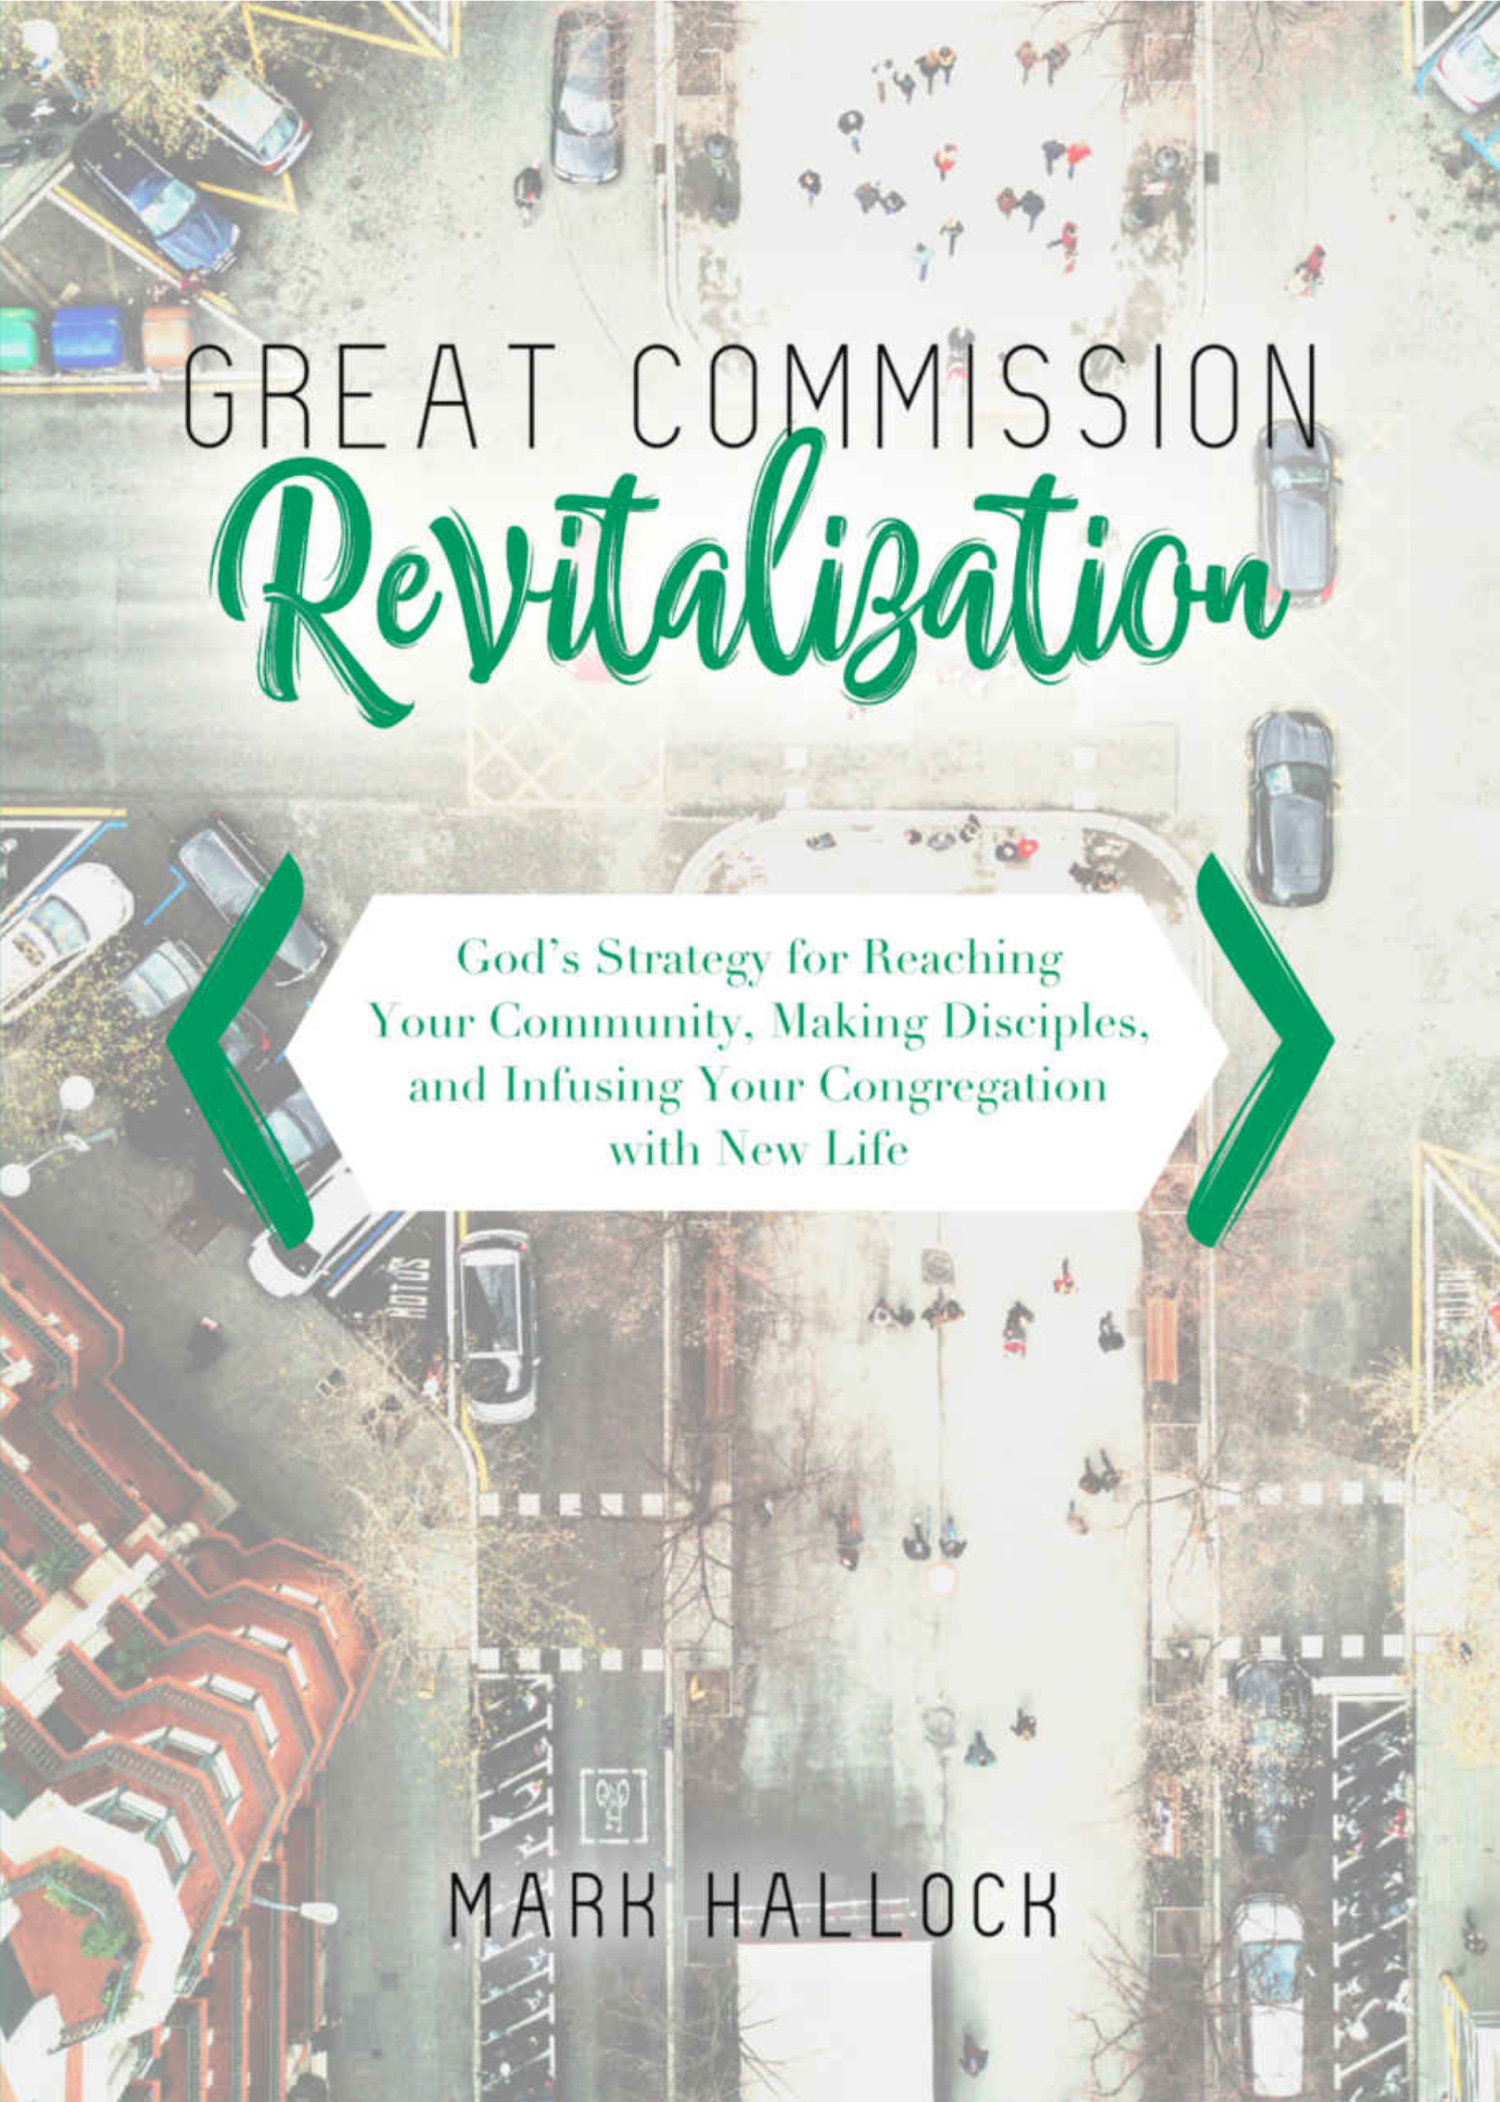 Replanting & Revitalization